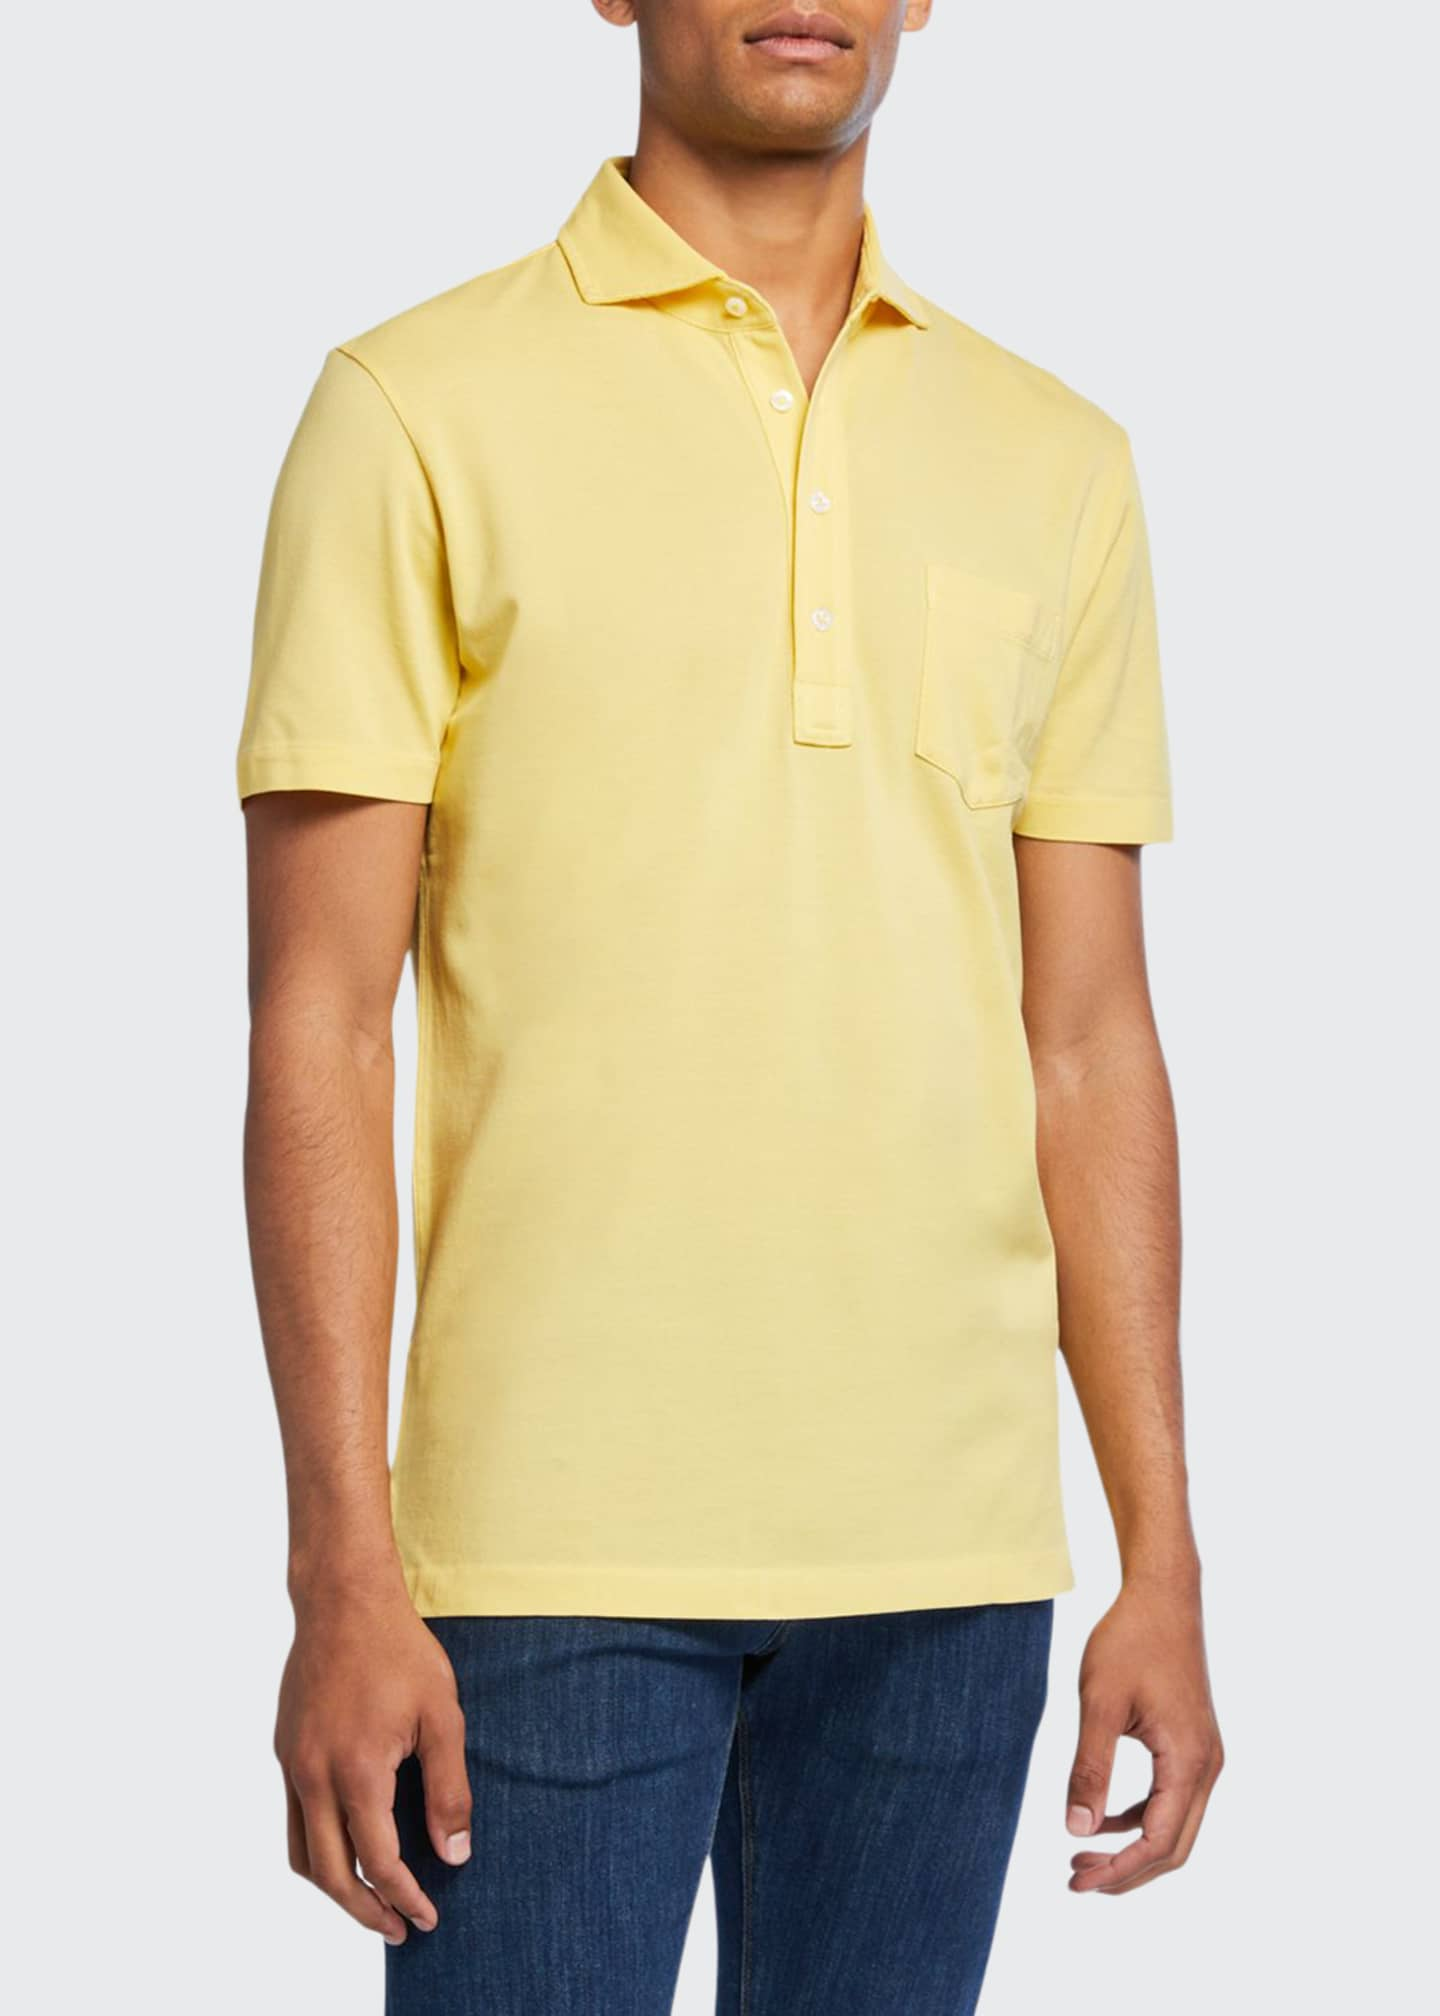 Ralph Lauren Men's Jersey Pocket Polo Shirt, Yellow